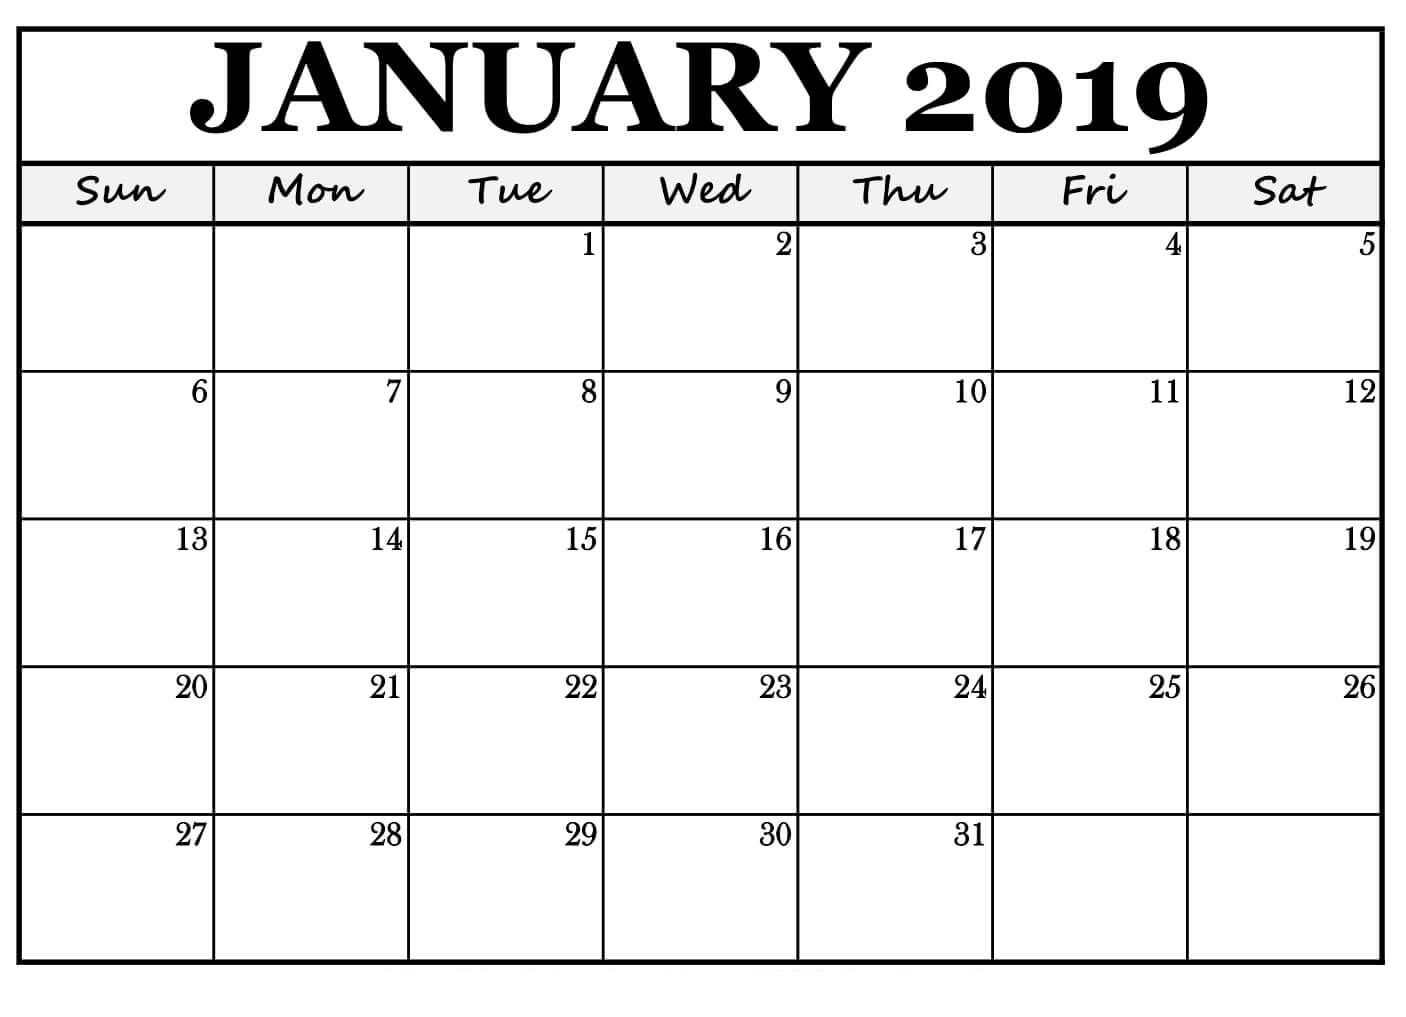 Printable January 2019 Calendars Cablo Commongroundsapex Co